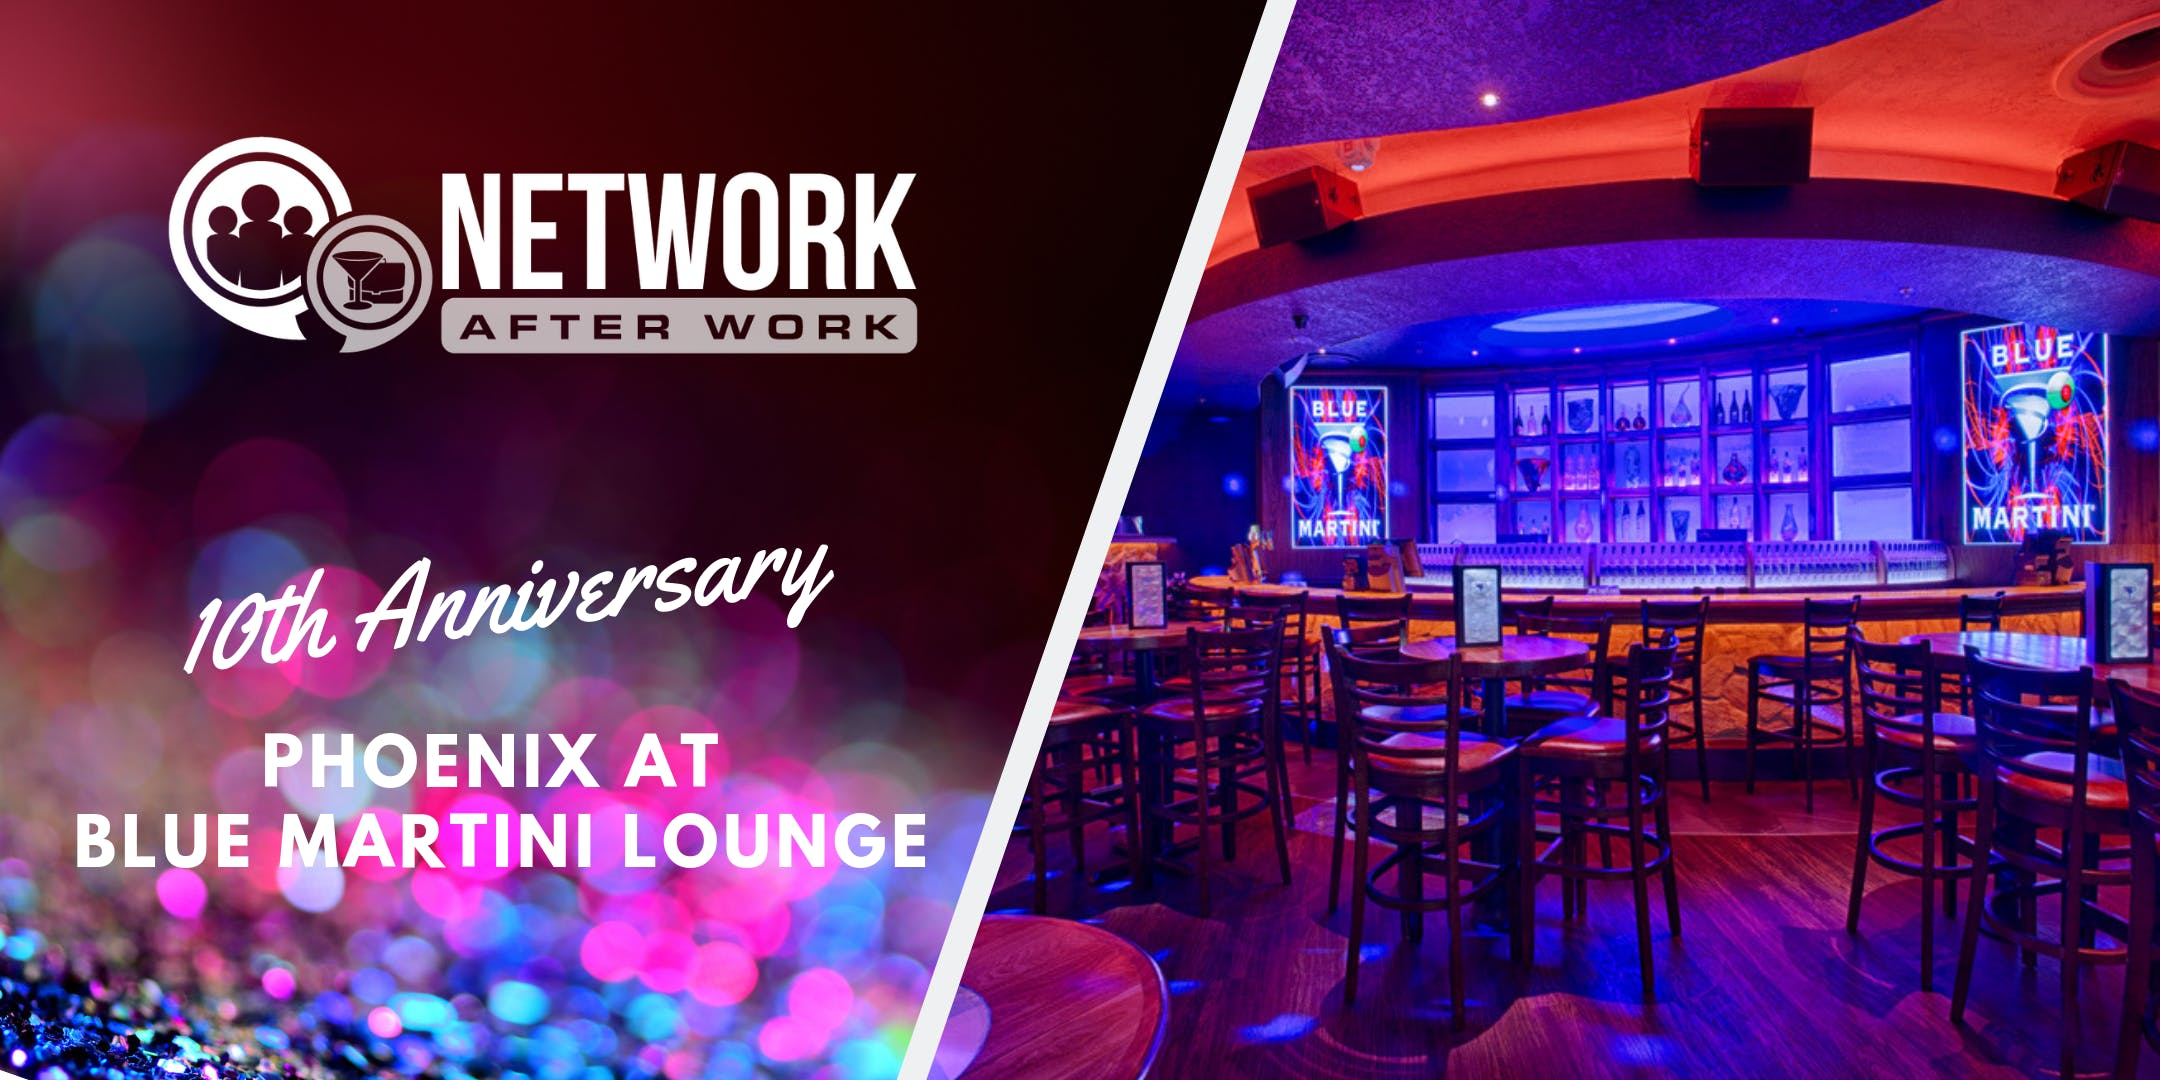 NAW Phoenix 10 Year Anniversary at Blue Martini Lounge